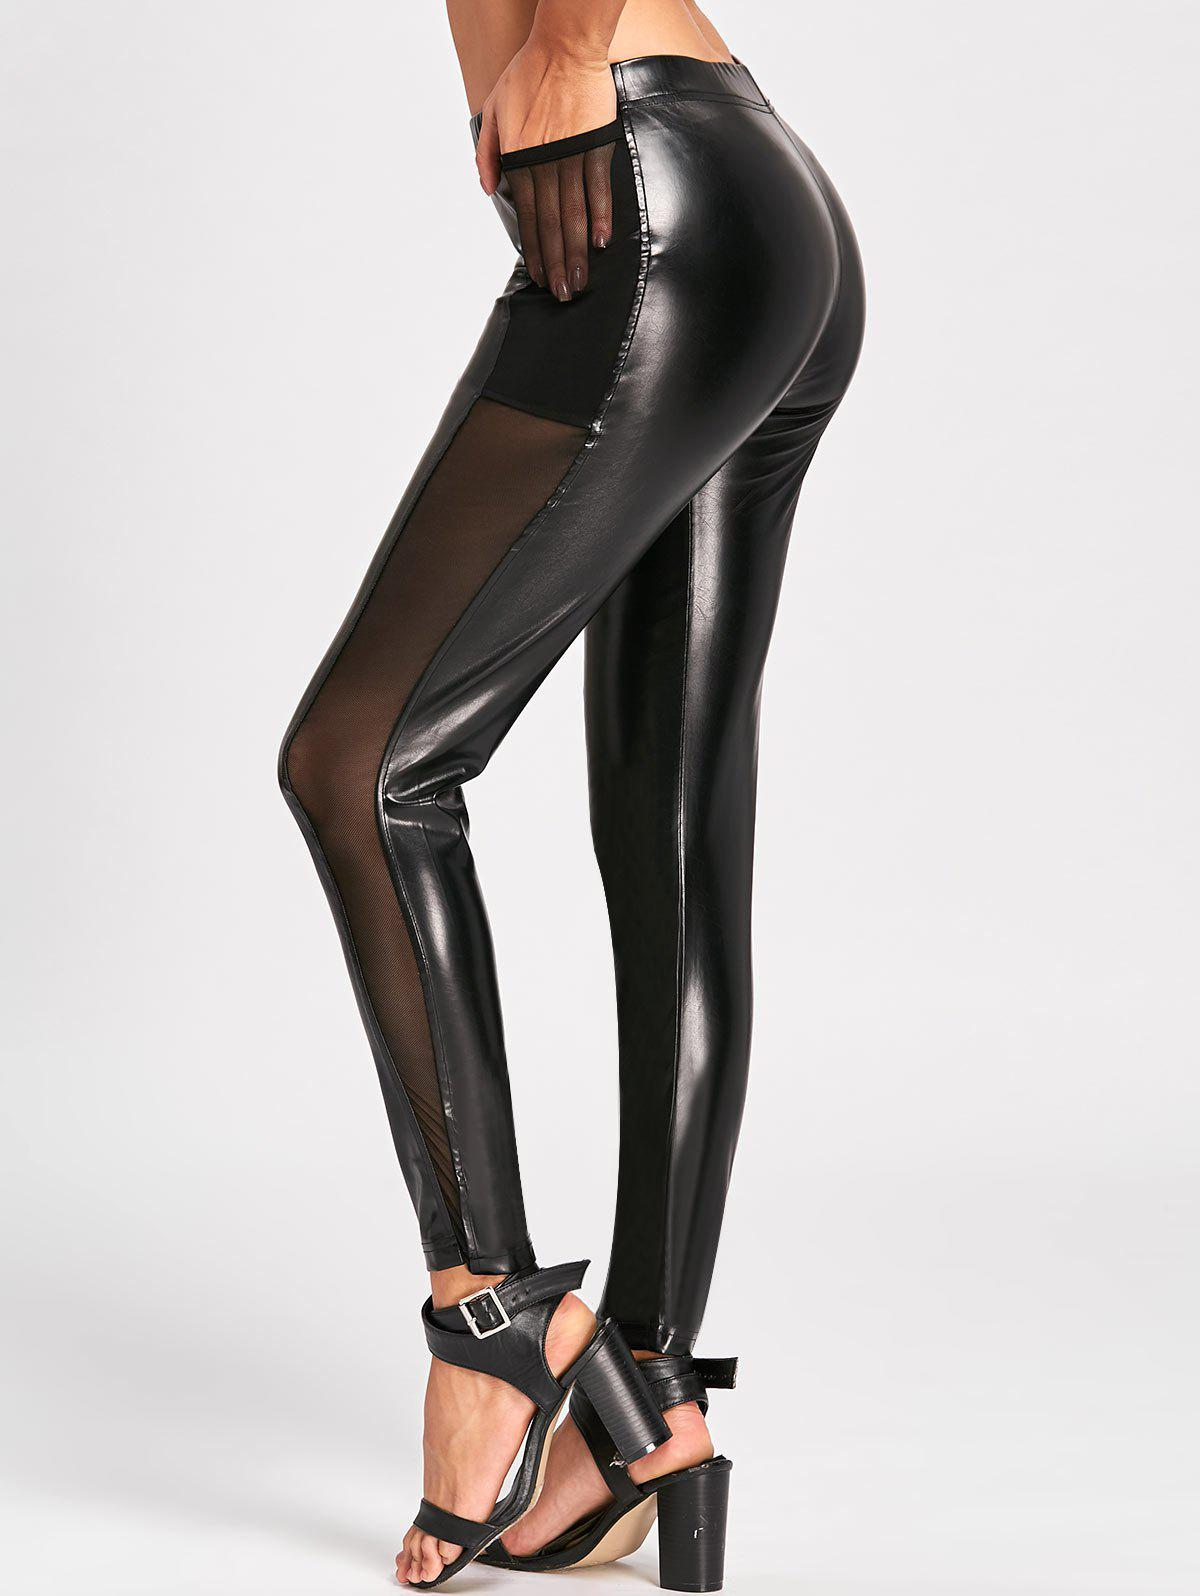 High Waist Sheer Mesh Insert Faux Leather Pants - BLACK M